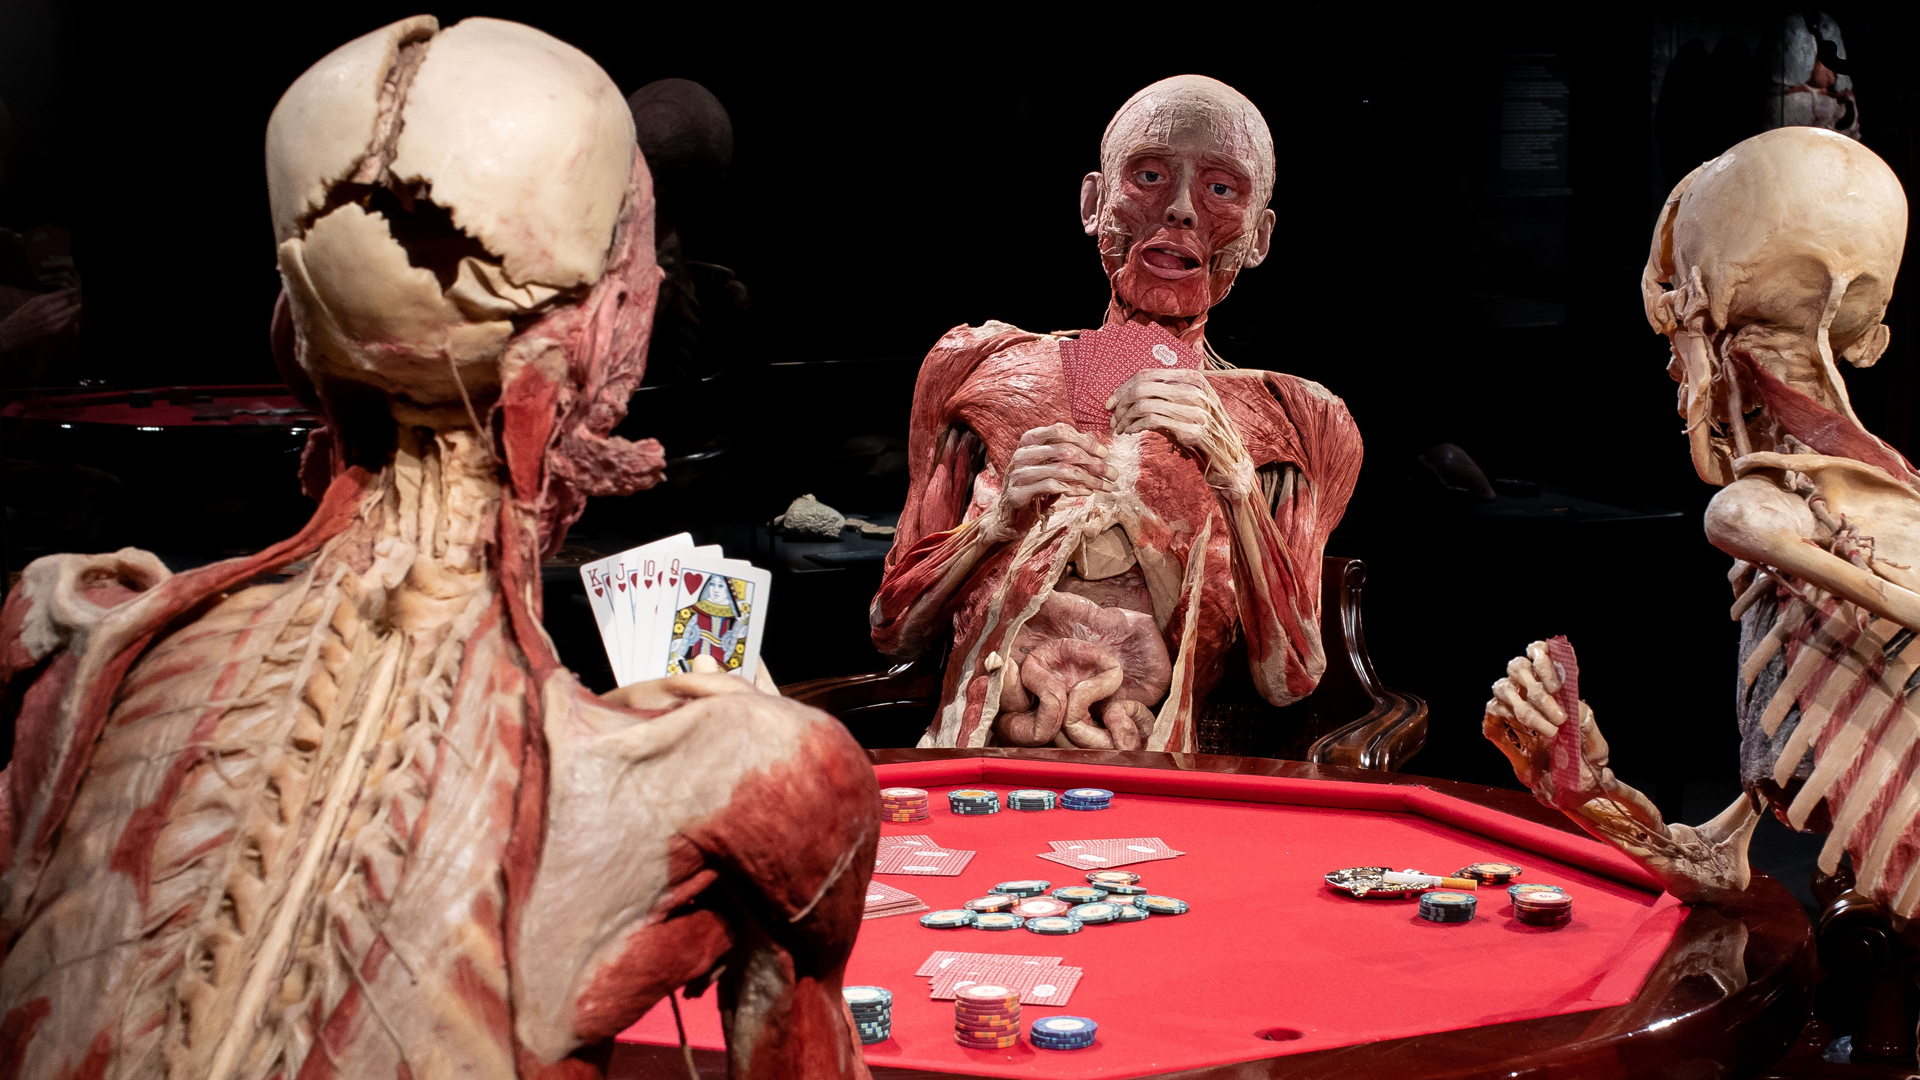 Three skeletons playing poker as part of Body Worlds exhibition